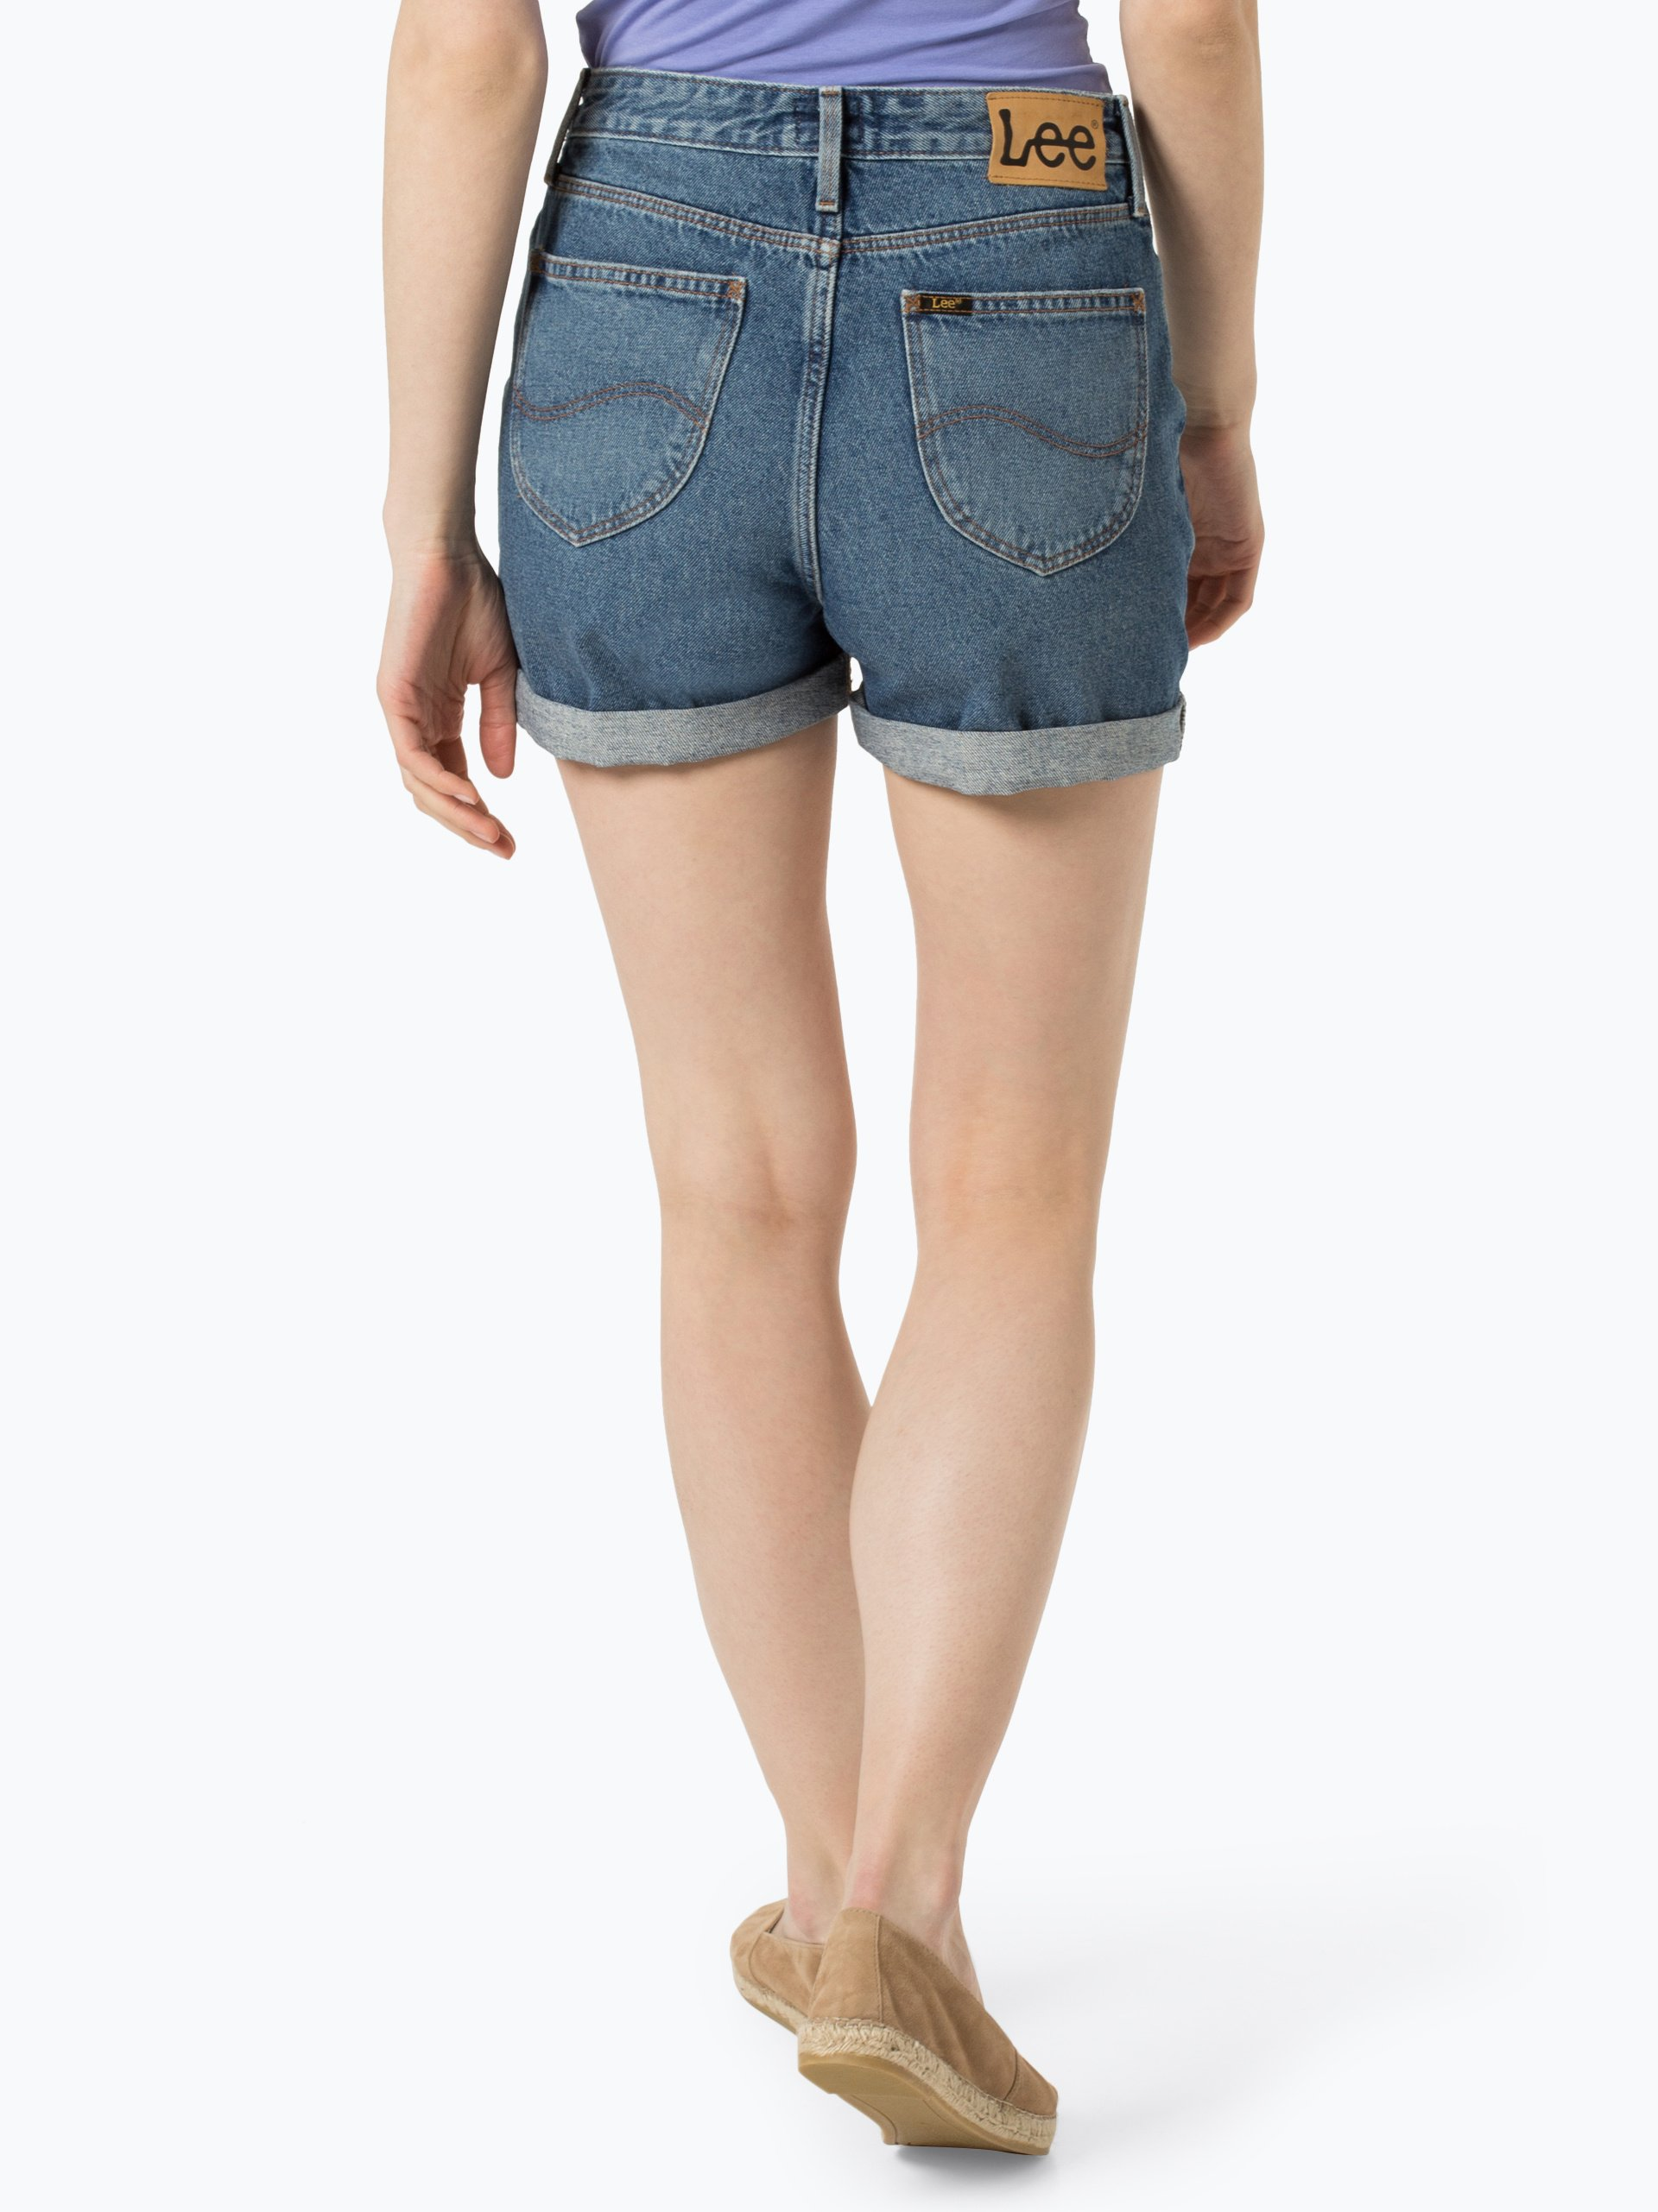 Lee Damen Jeansshorts - Mom Short